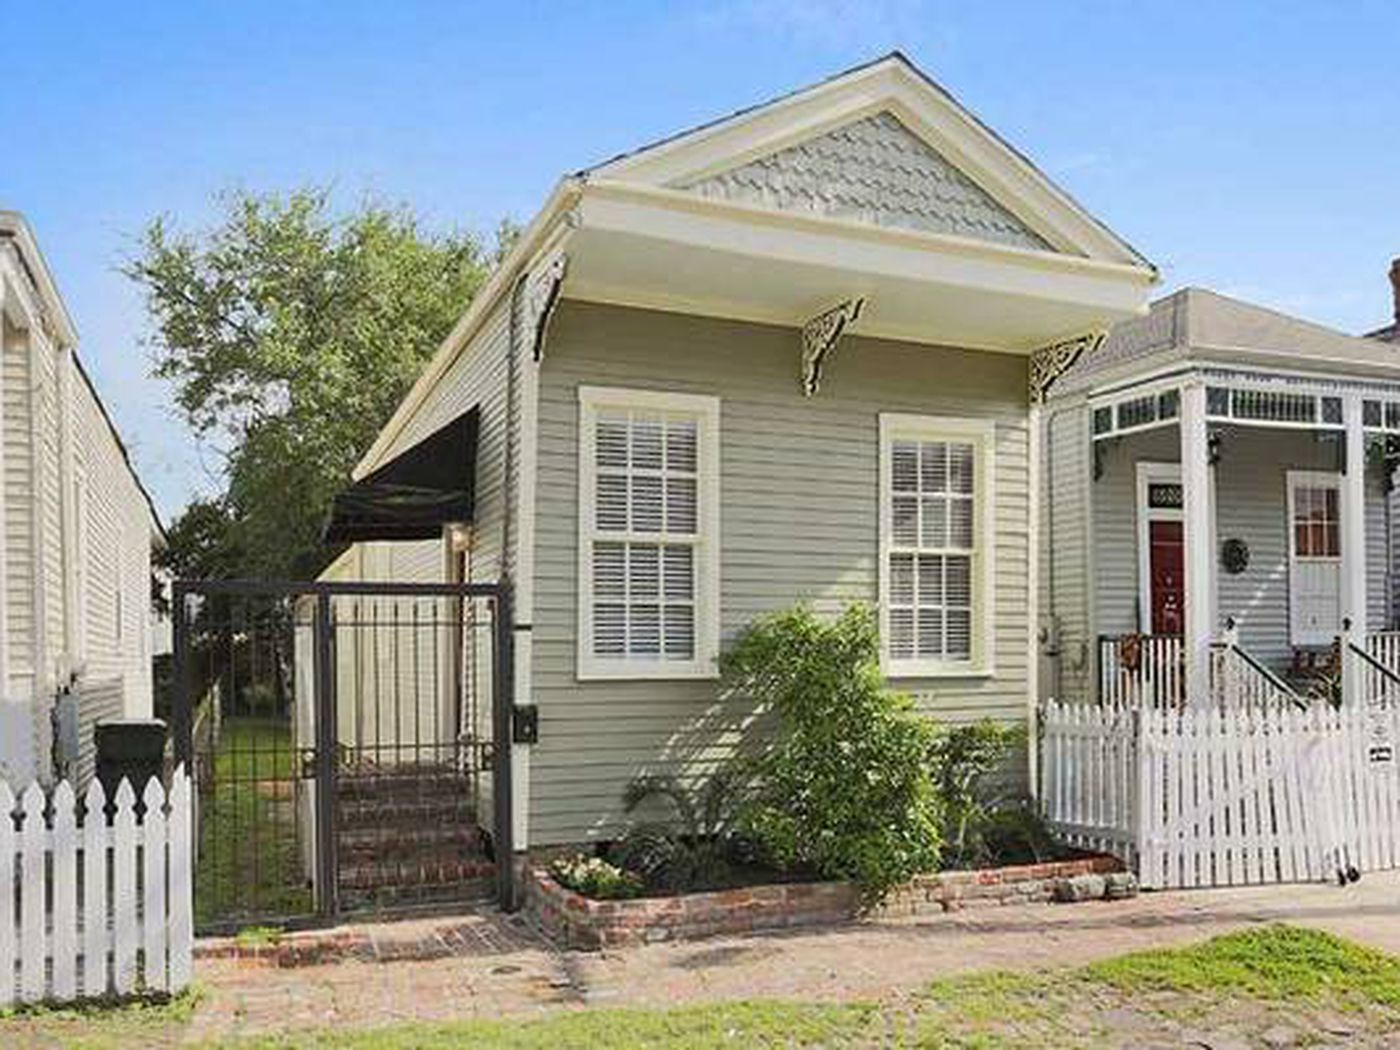 For Rent in New Orleans - Curbed New Orleans